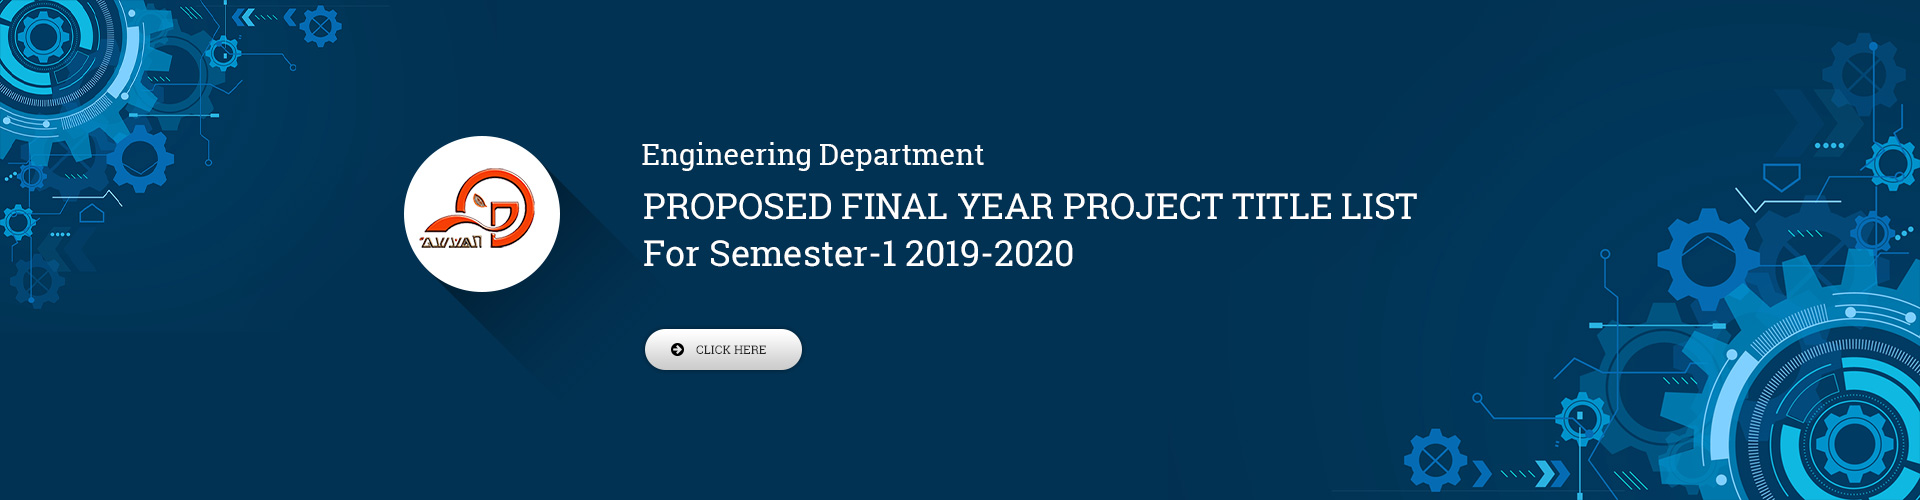 Engineering Department - Proposed Final Year Project Title List, Semester 3 AY 2019-2020